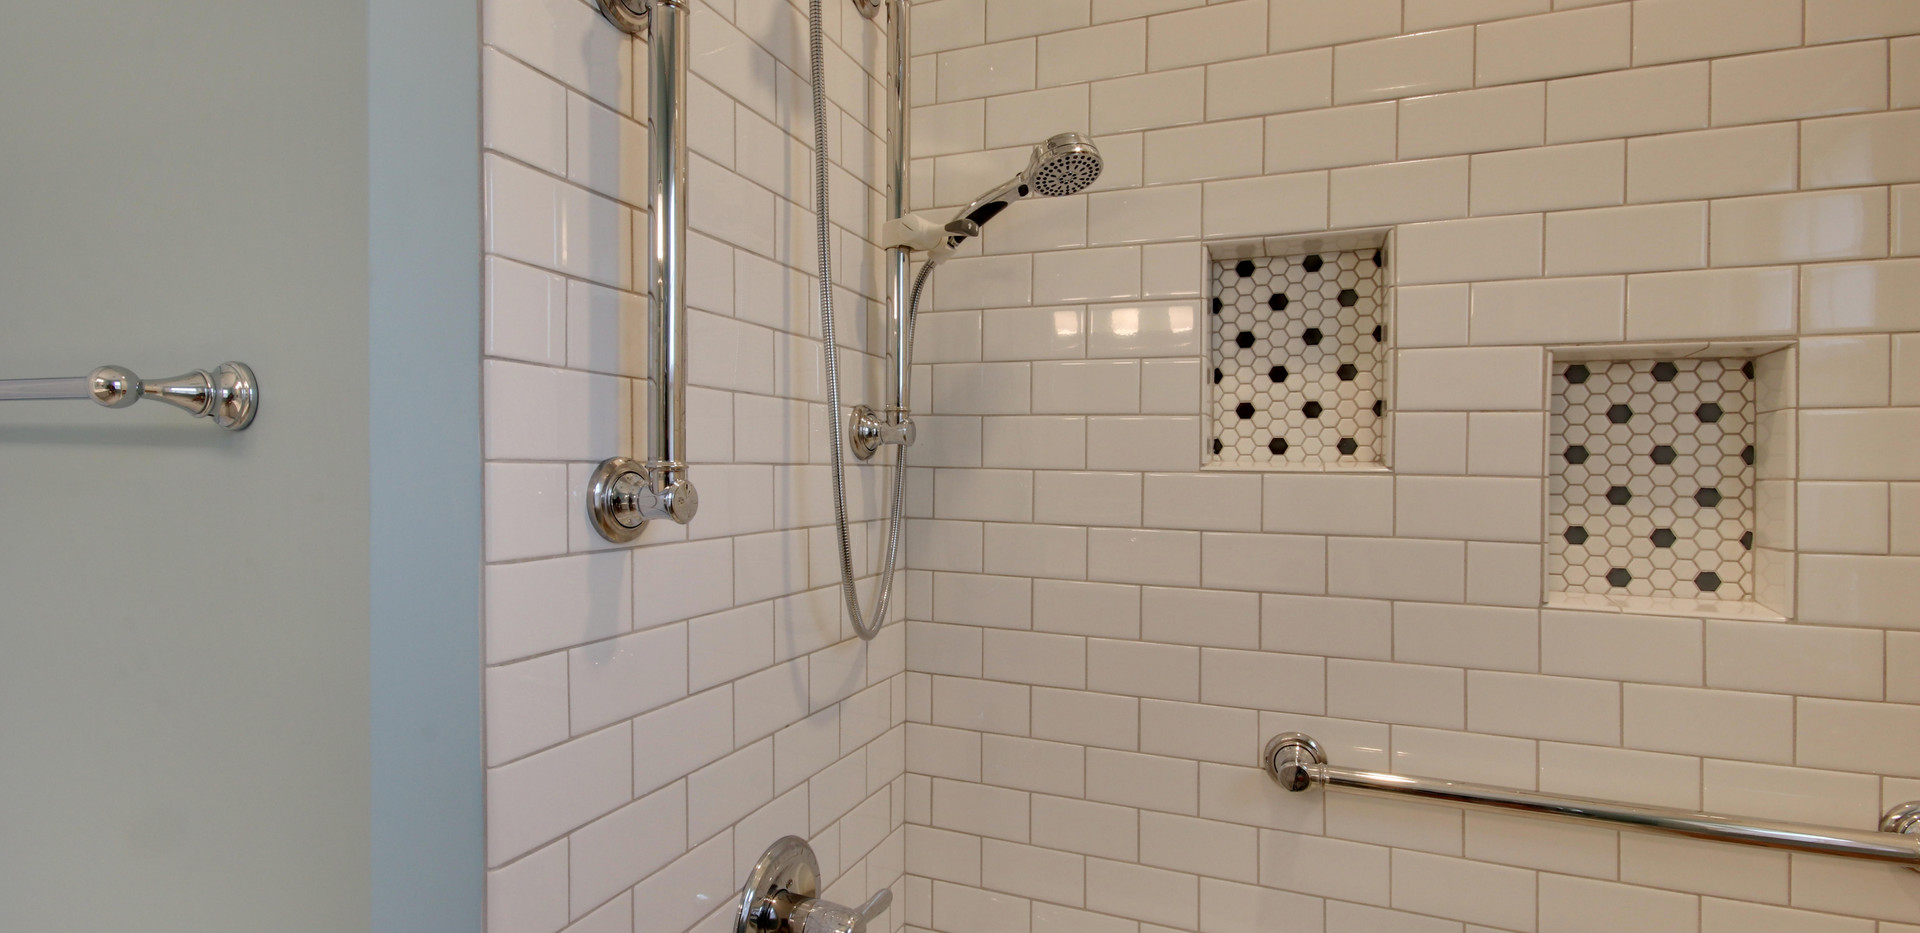 Hudsonville bathroom remodel featuring new tub shower